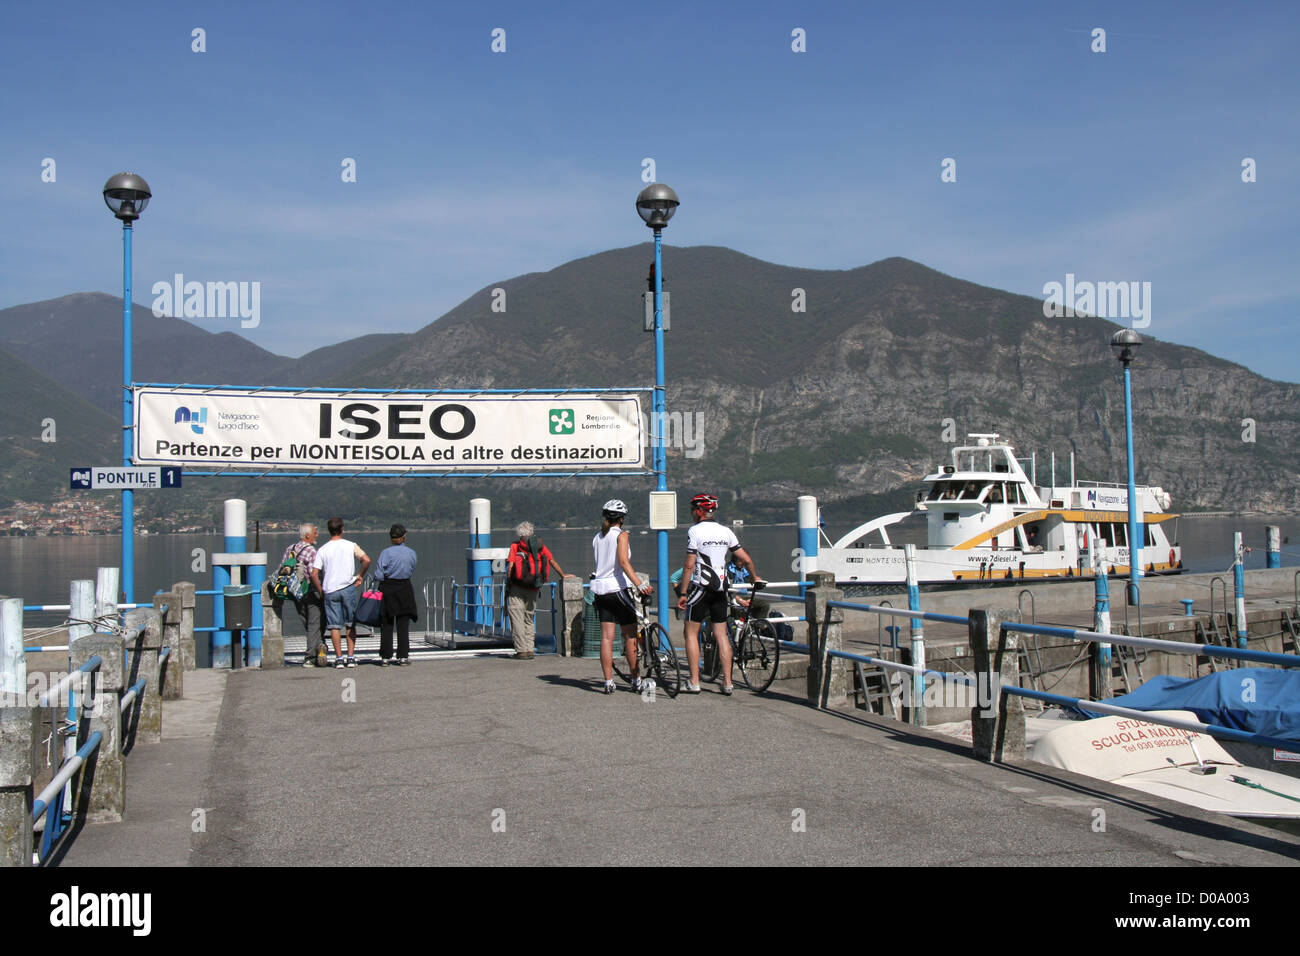 Iseo landing stage for ferry on Lago d'Iseo, Italy - Stock Image